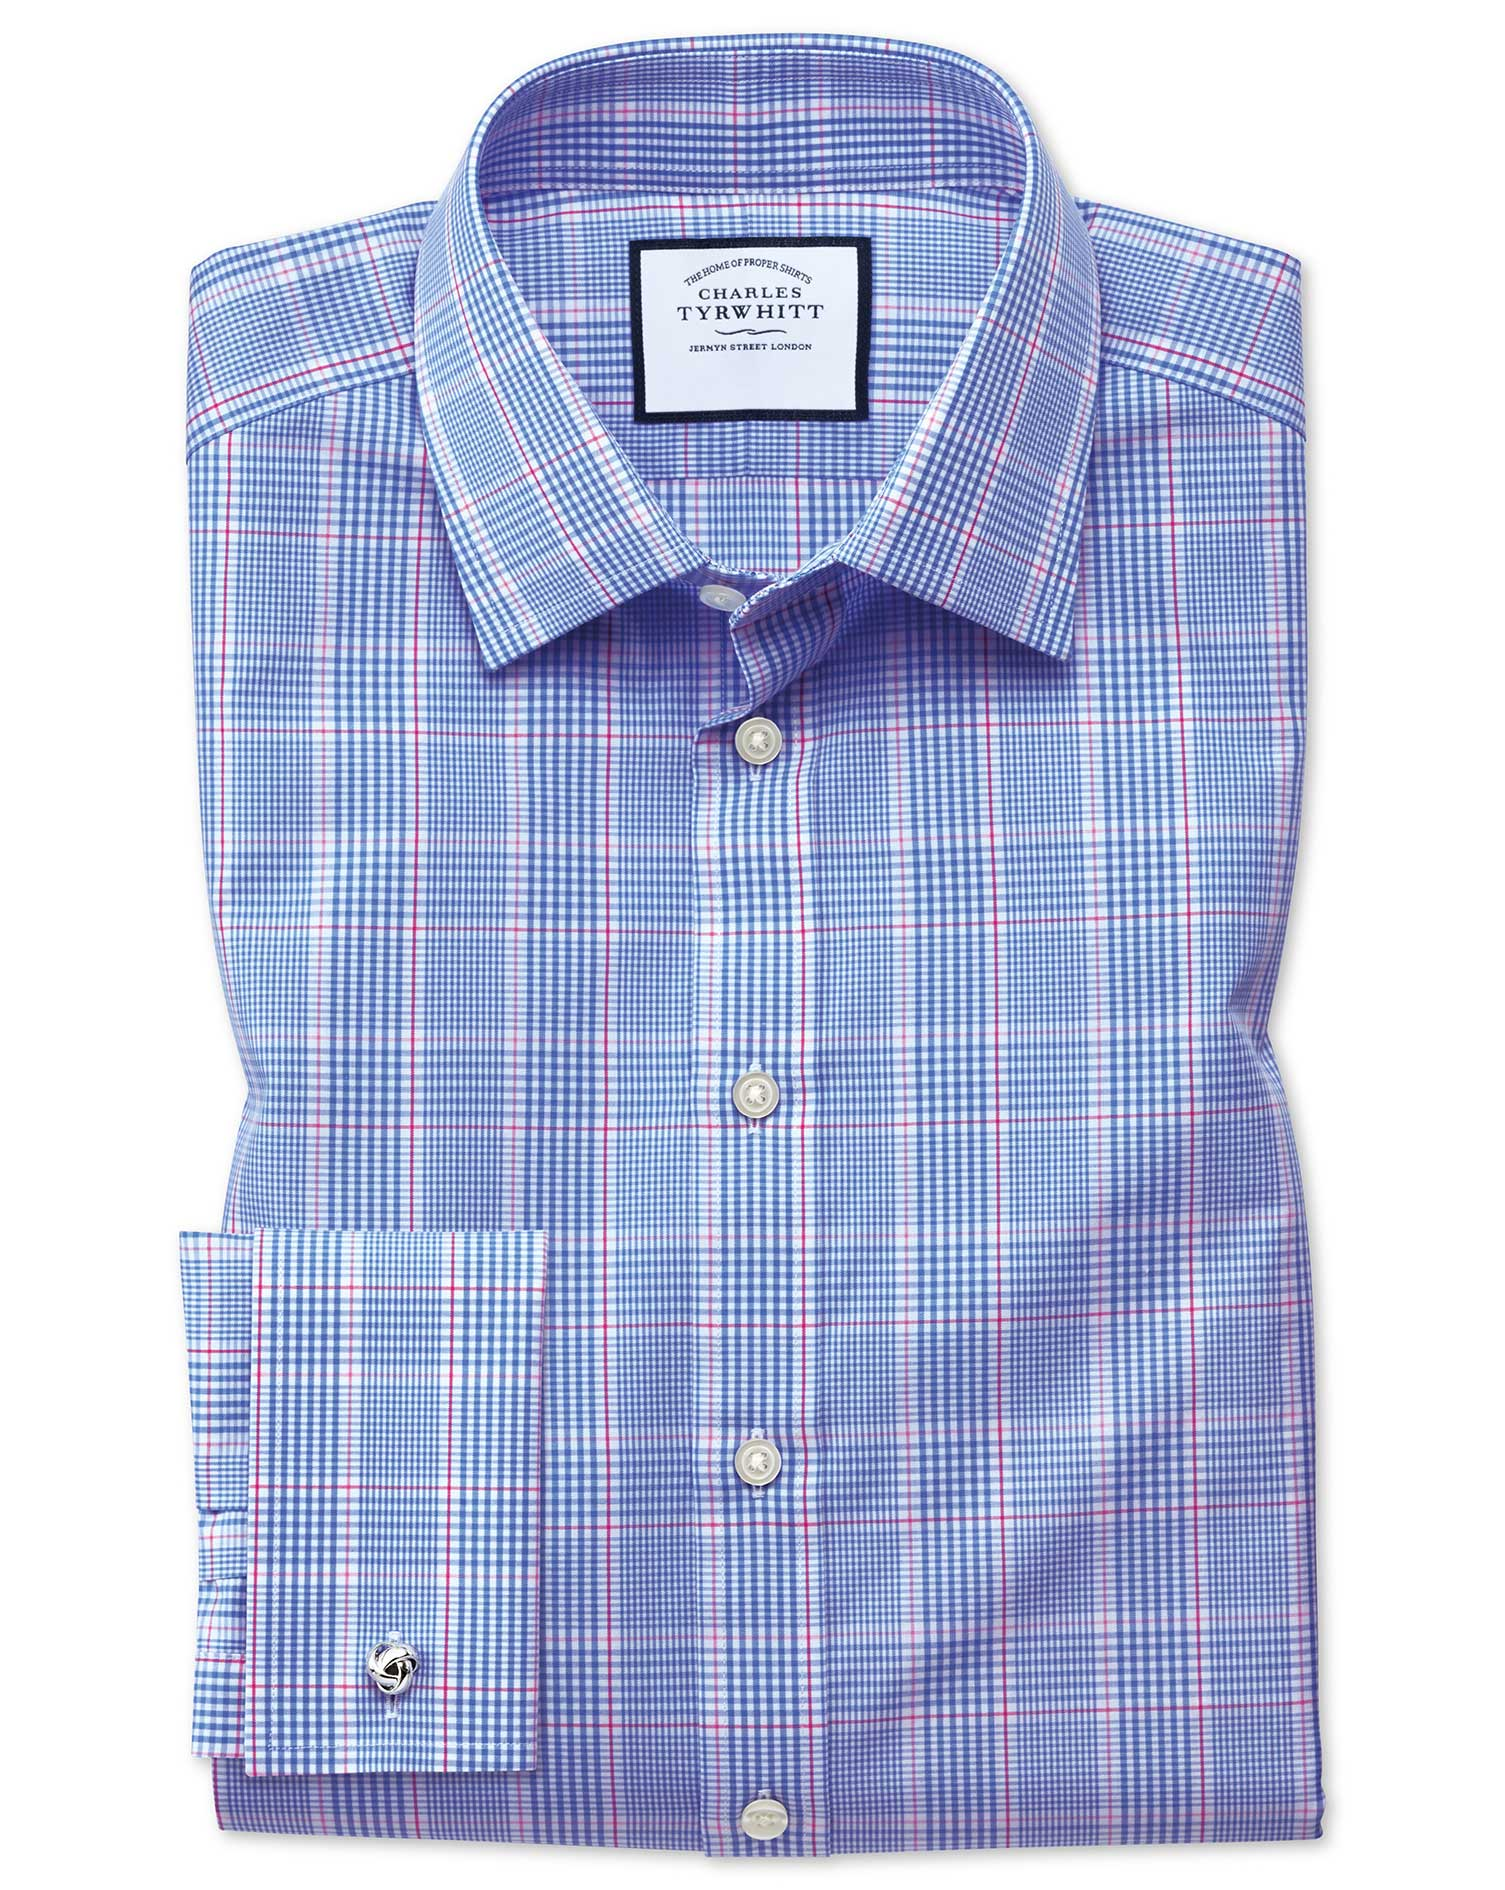 Slim Fit Prince Of Wales Blue Cotton Formal Shirt Single Cuff Size 15/34 by Charles Tyrwhitt